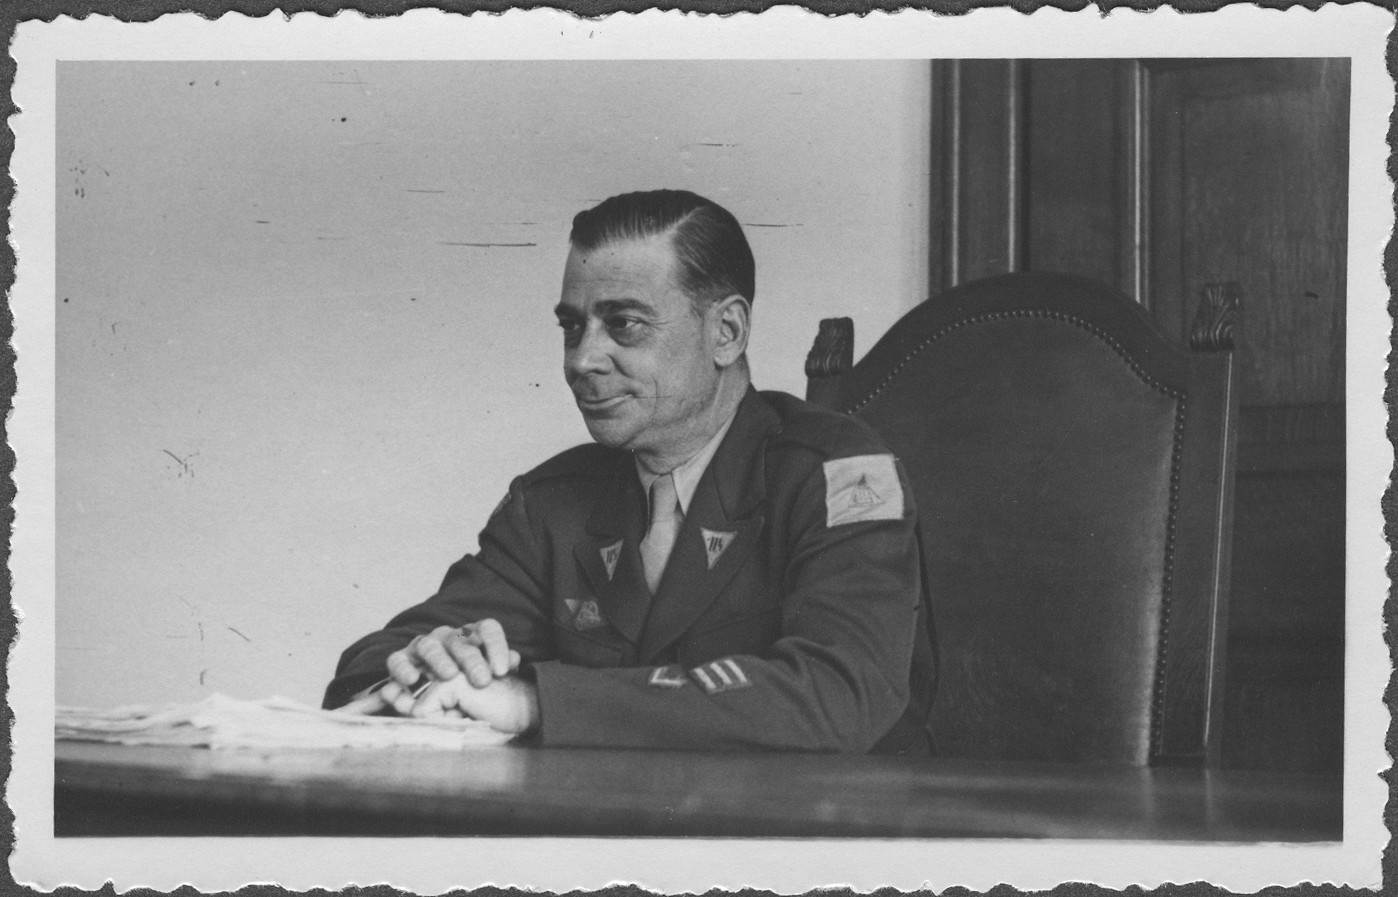 Portrait of Col. Taylor, a commissioner at the IMT Nuremberg commission hearings investigating indicted Nazi organizations.